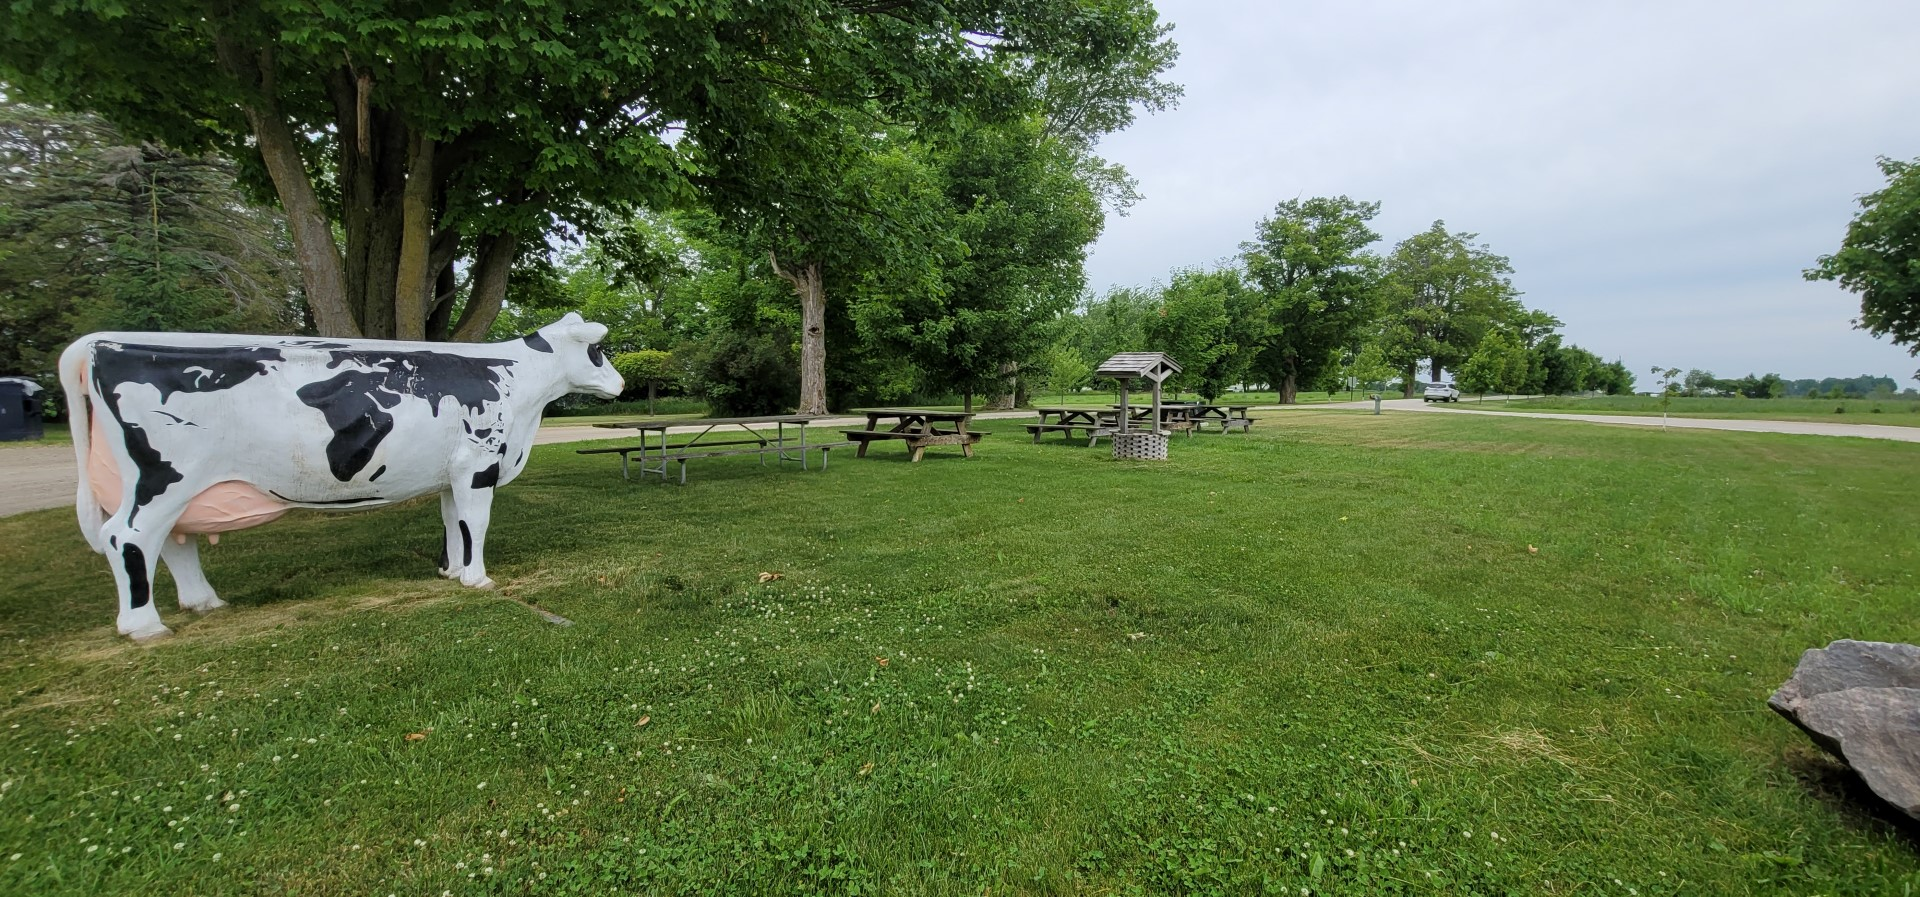 Cow statue in green grass with picnic benches